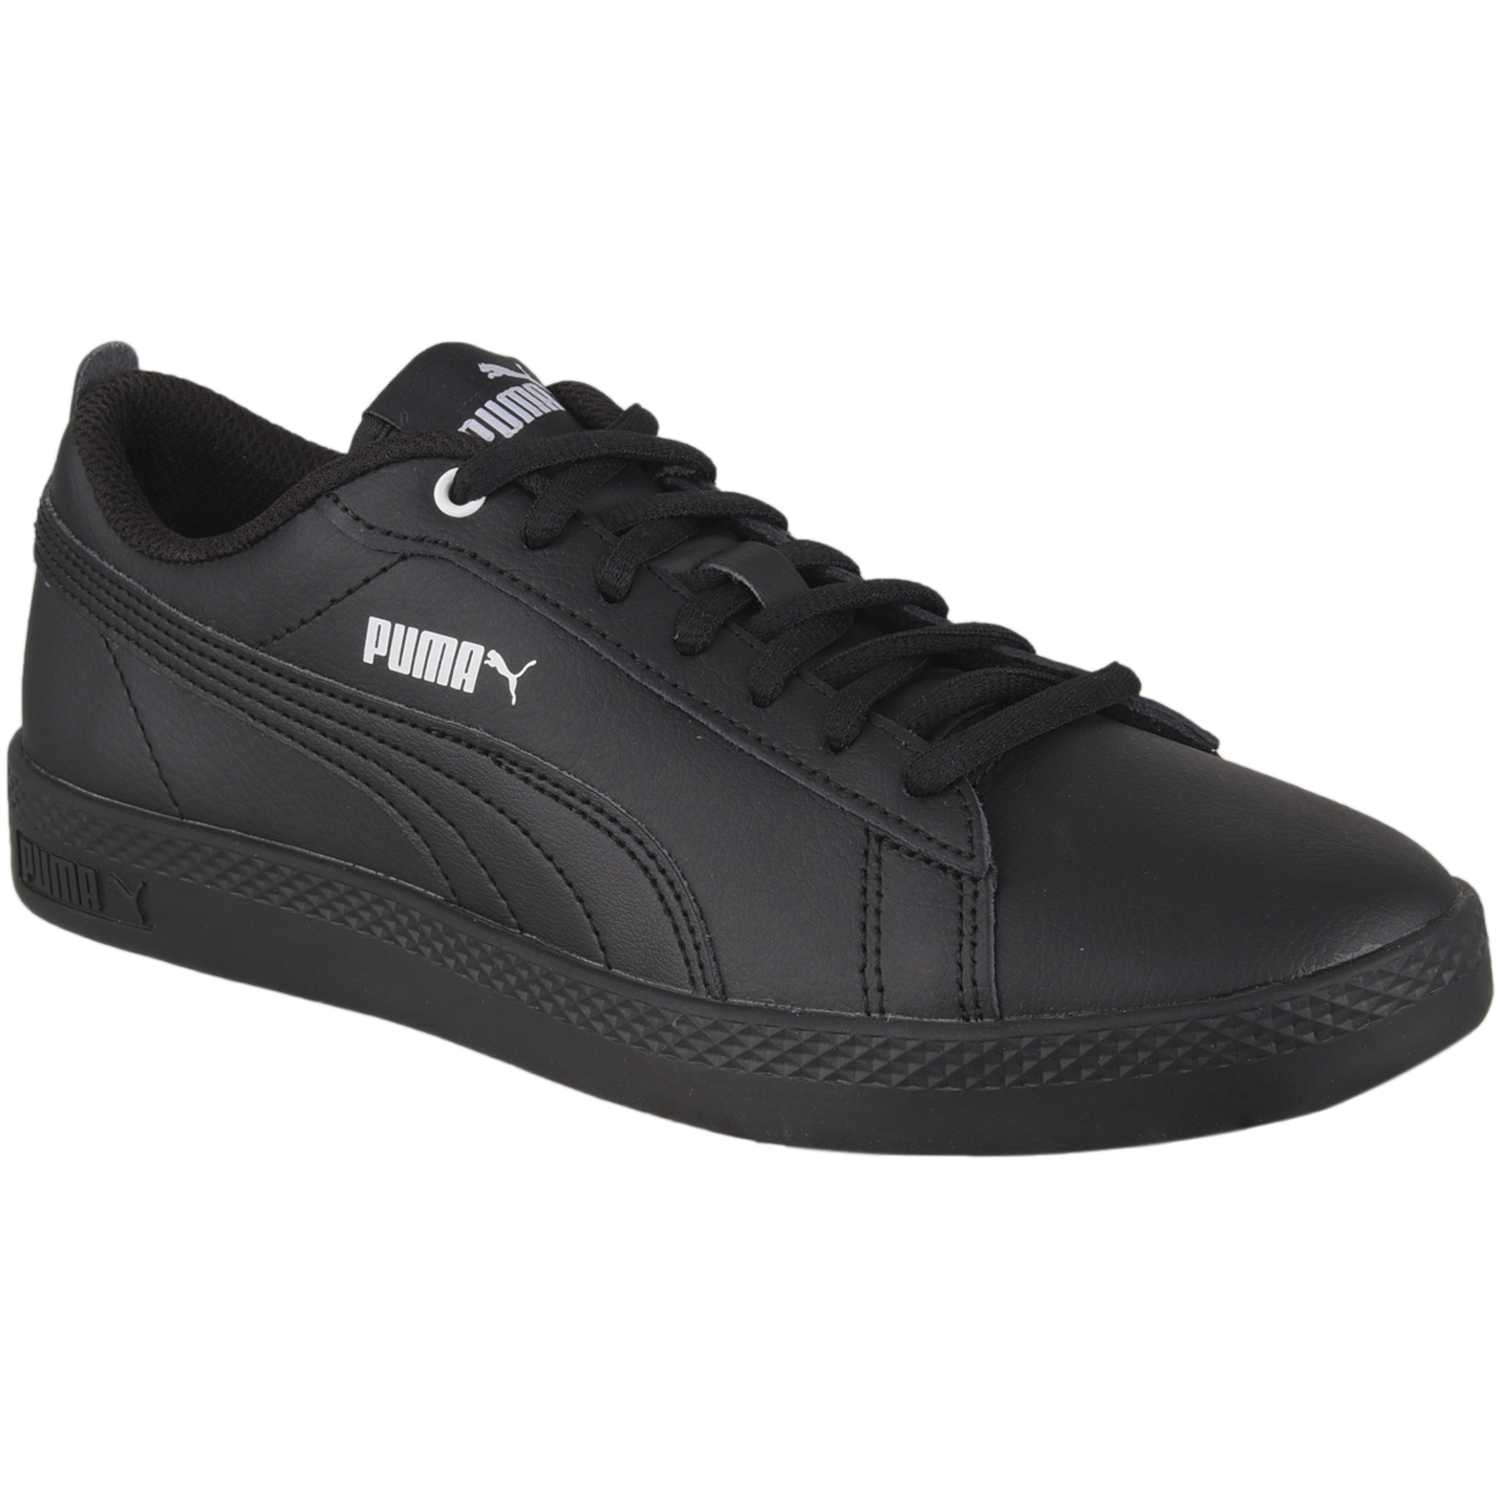 Puma puma smash wns v2 l Negro Walking